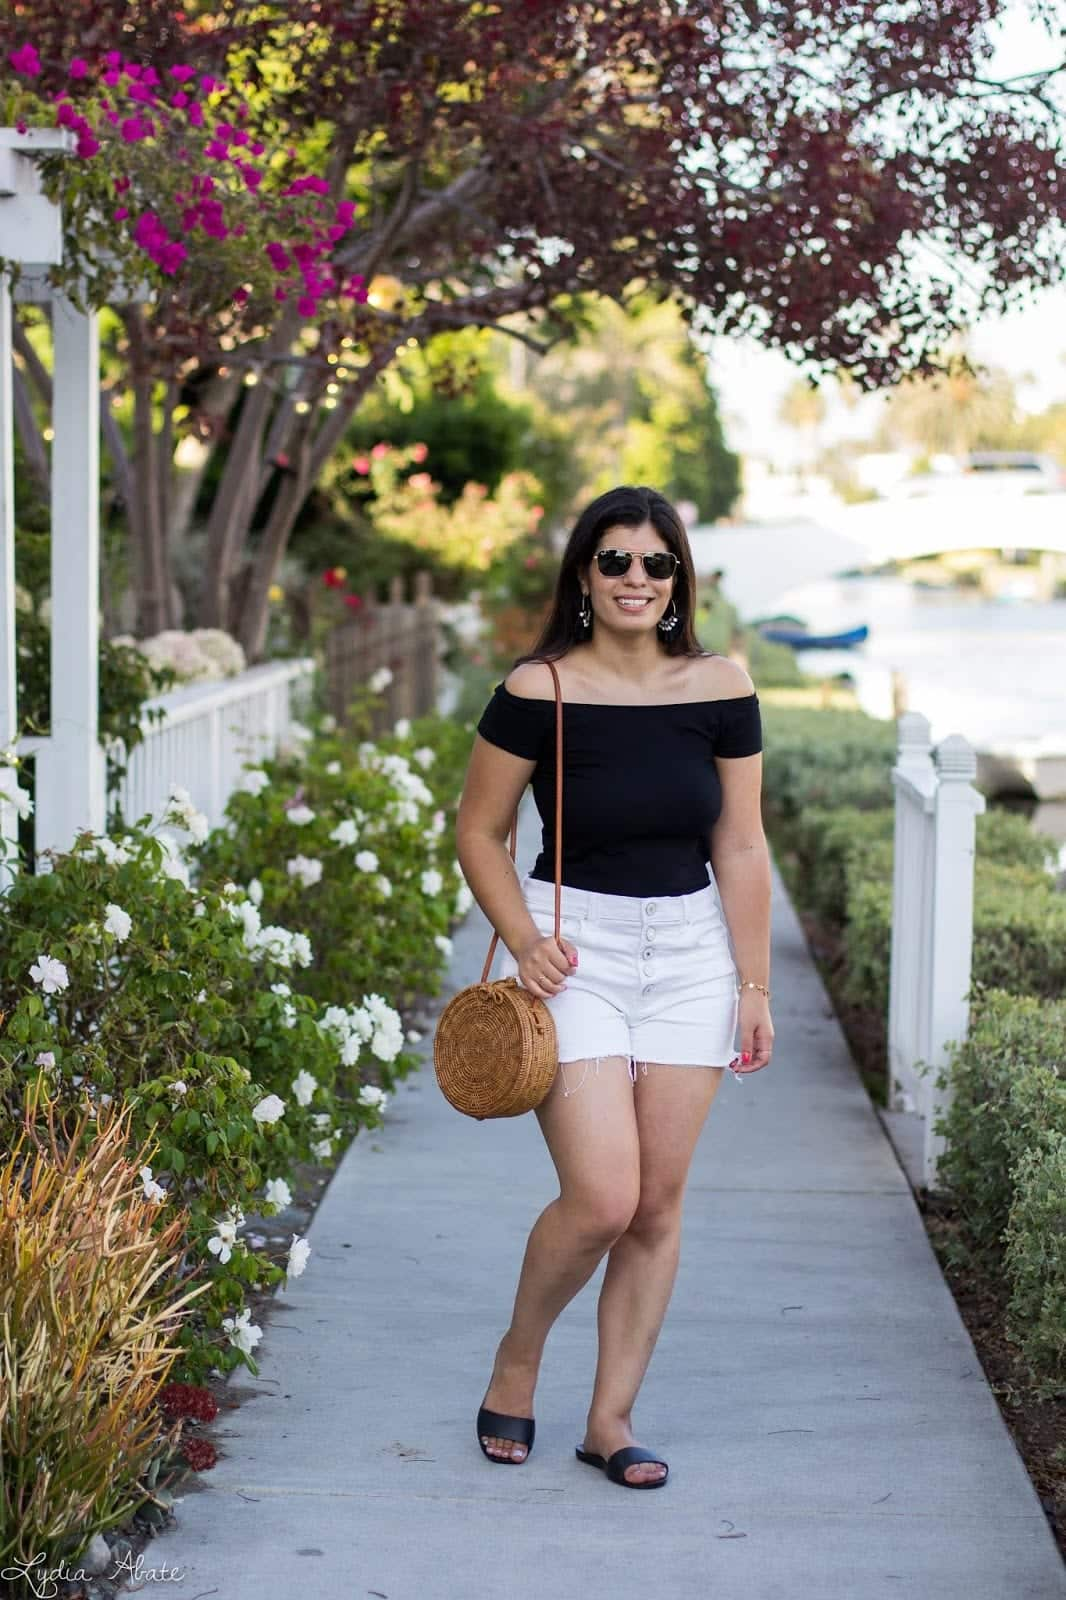 Outfits under $50 Women (21)